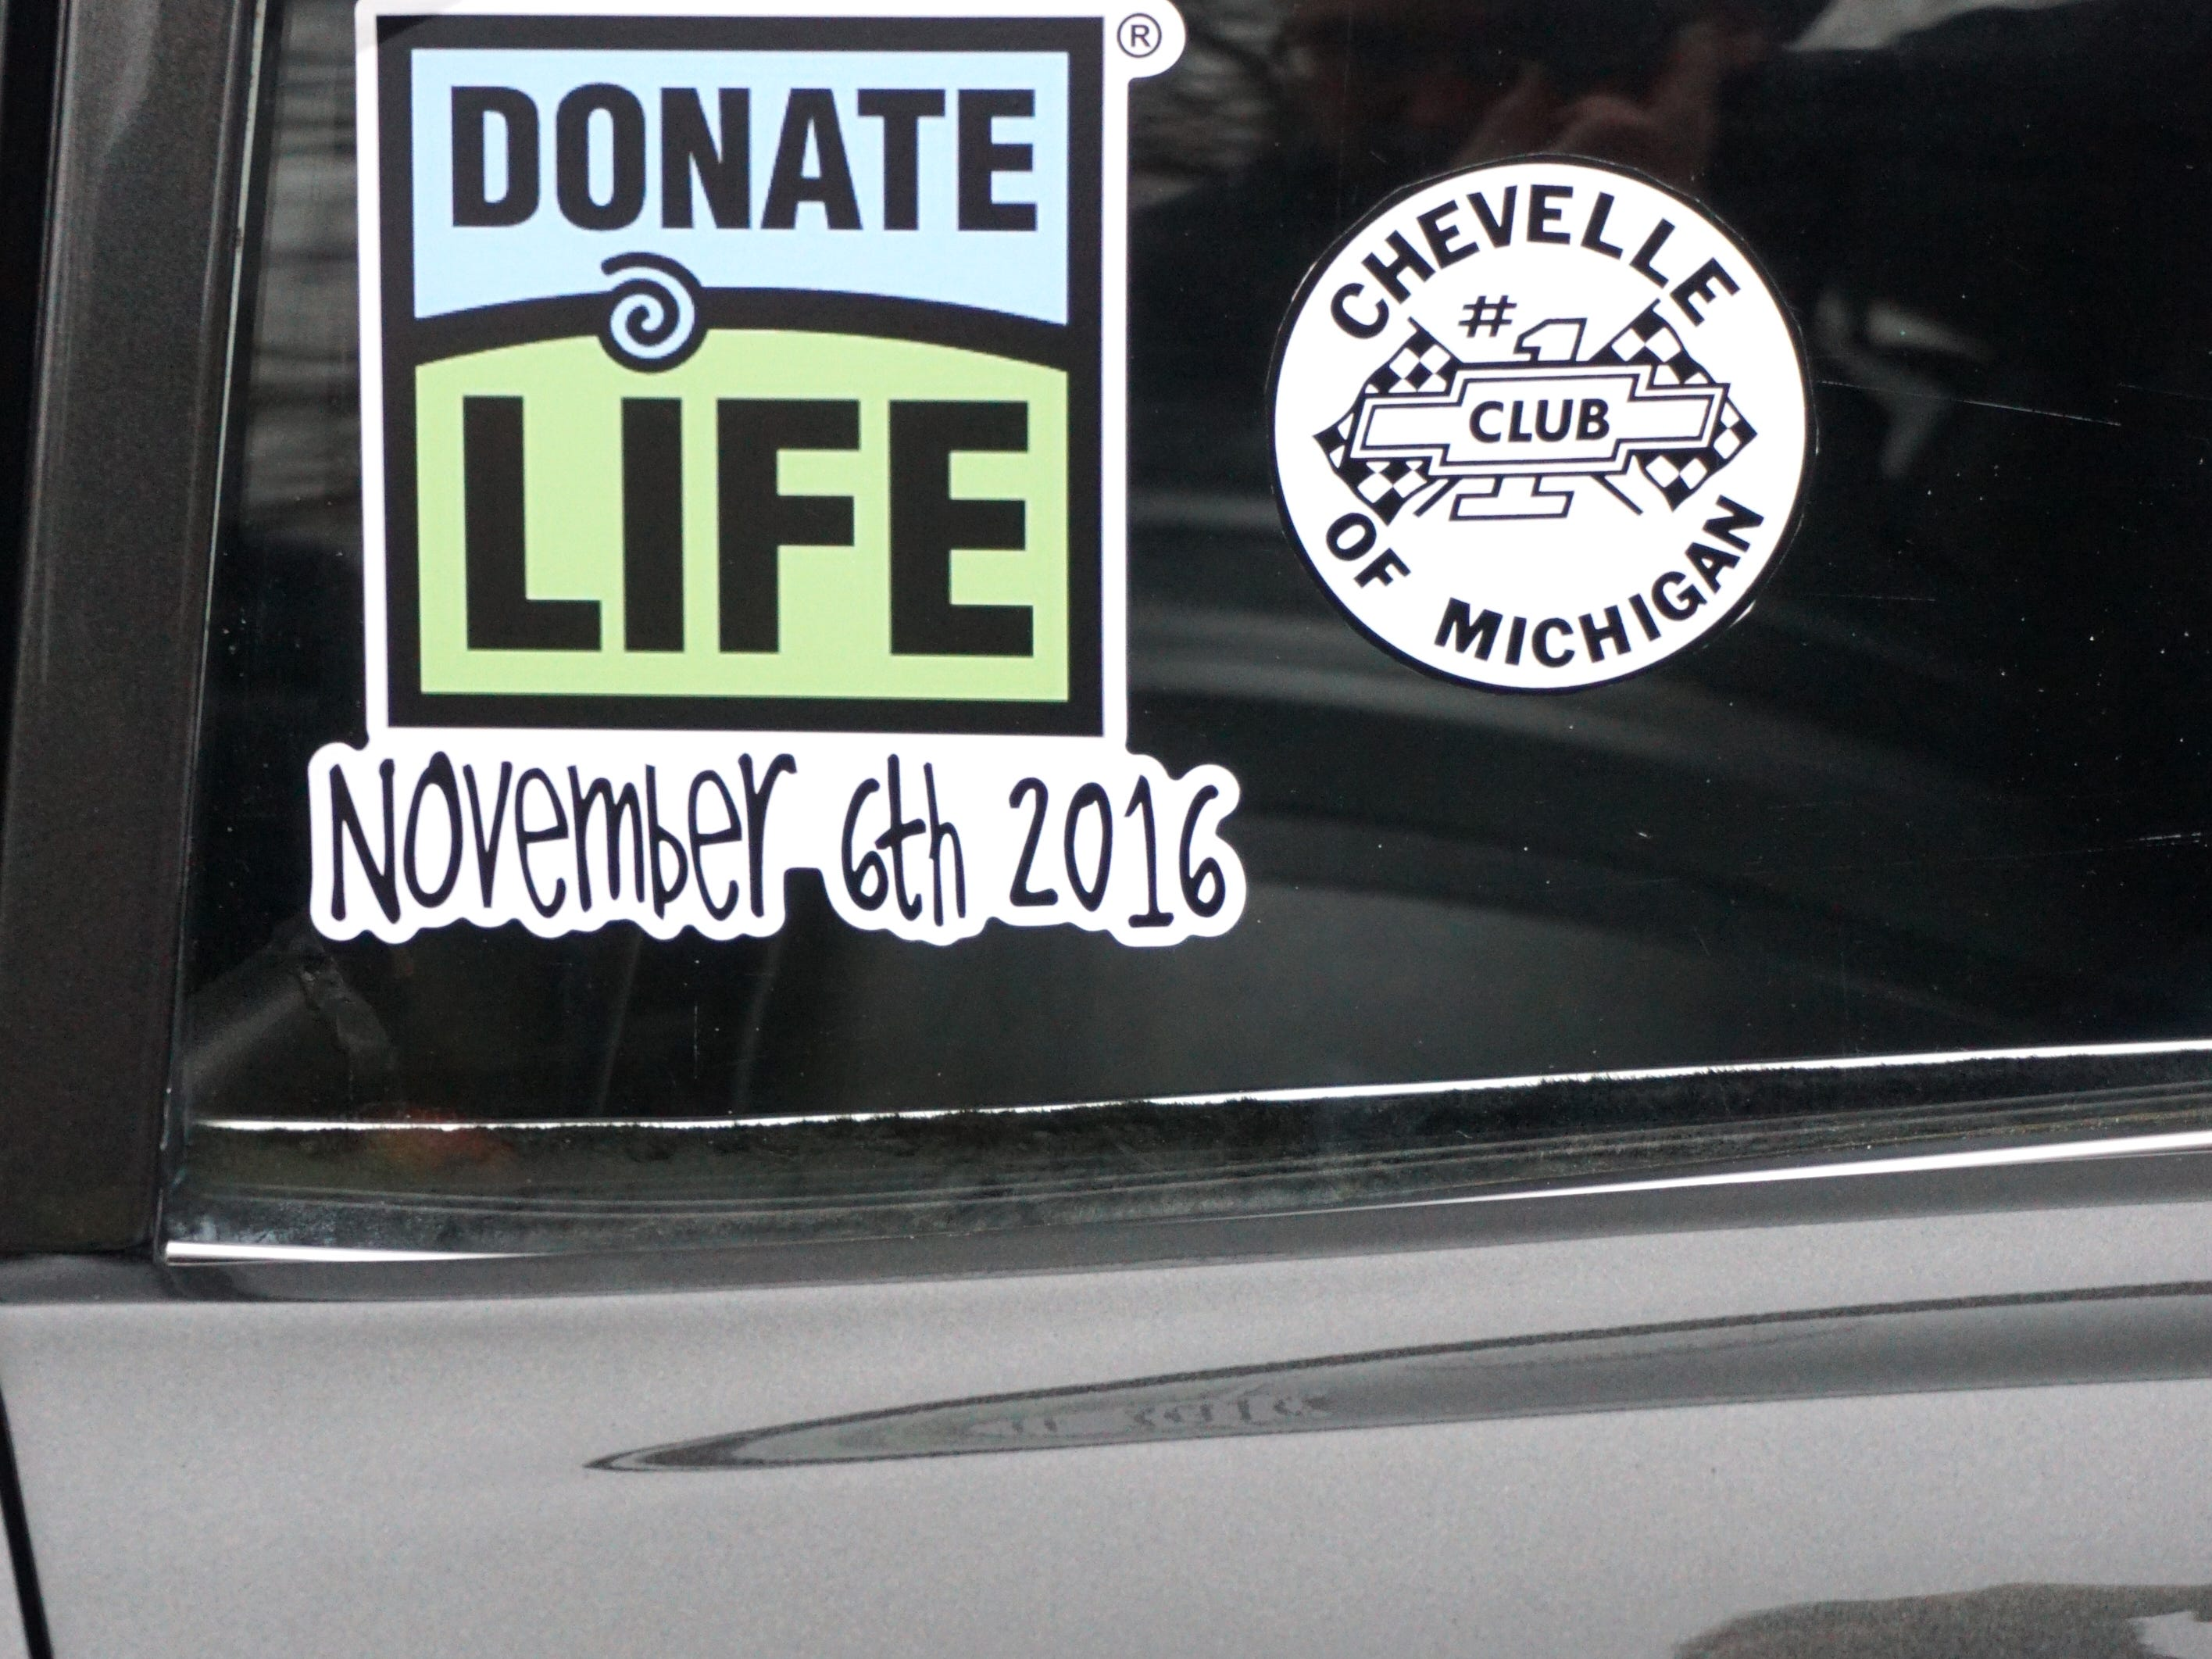 Carey's '67 Chevelle was painted in the colors and pattern of the Donate Life campaign and notes the day he received a double-lung transplant: November 6, 2016.